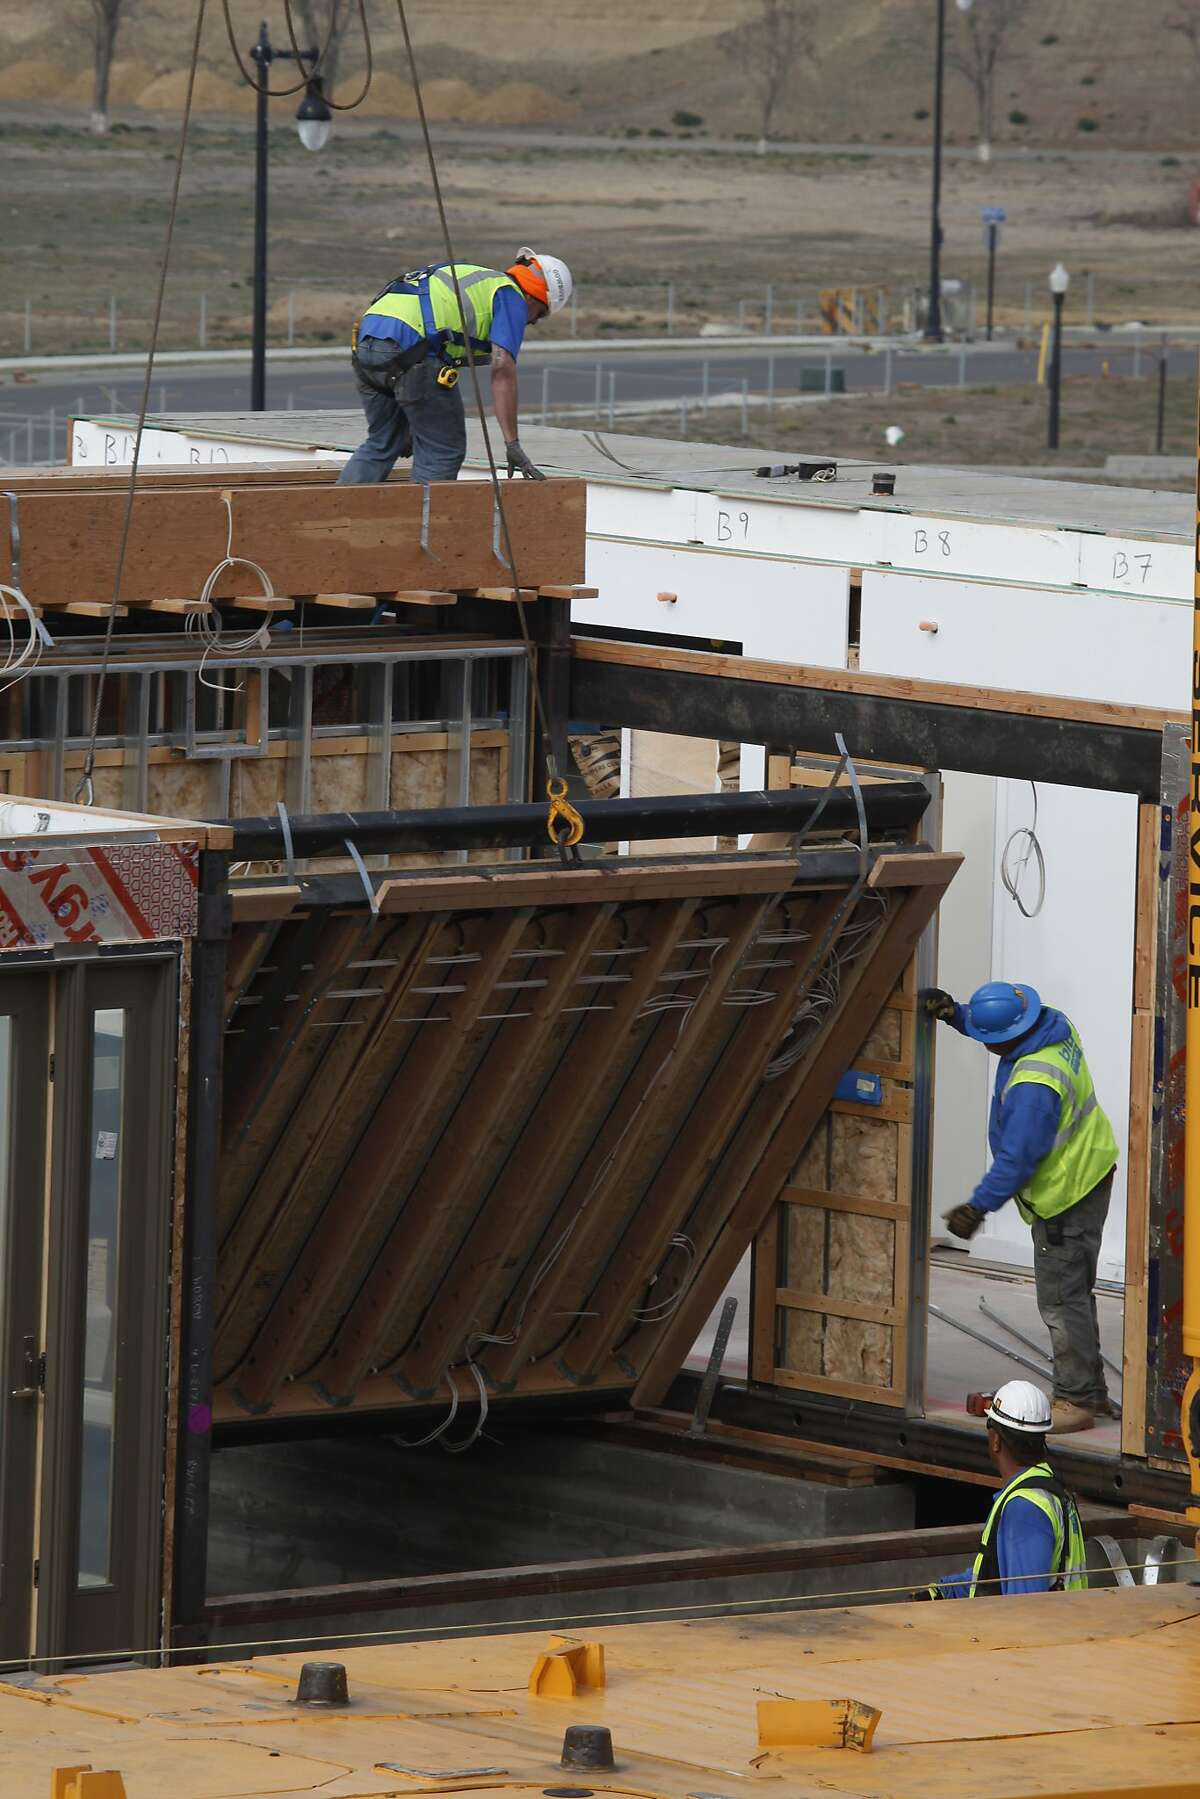 Construction works on a Blu Homes Design Center Breezehouse in Mare Island, Vallejo, Calif., as a floor folds out on Monday, January 27, 2014.